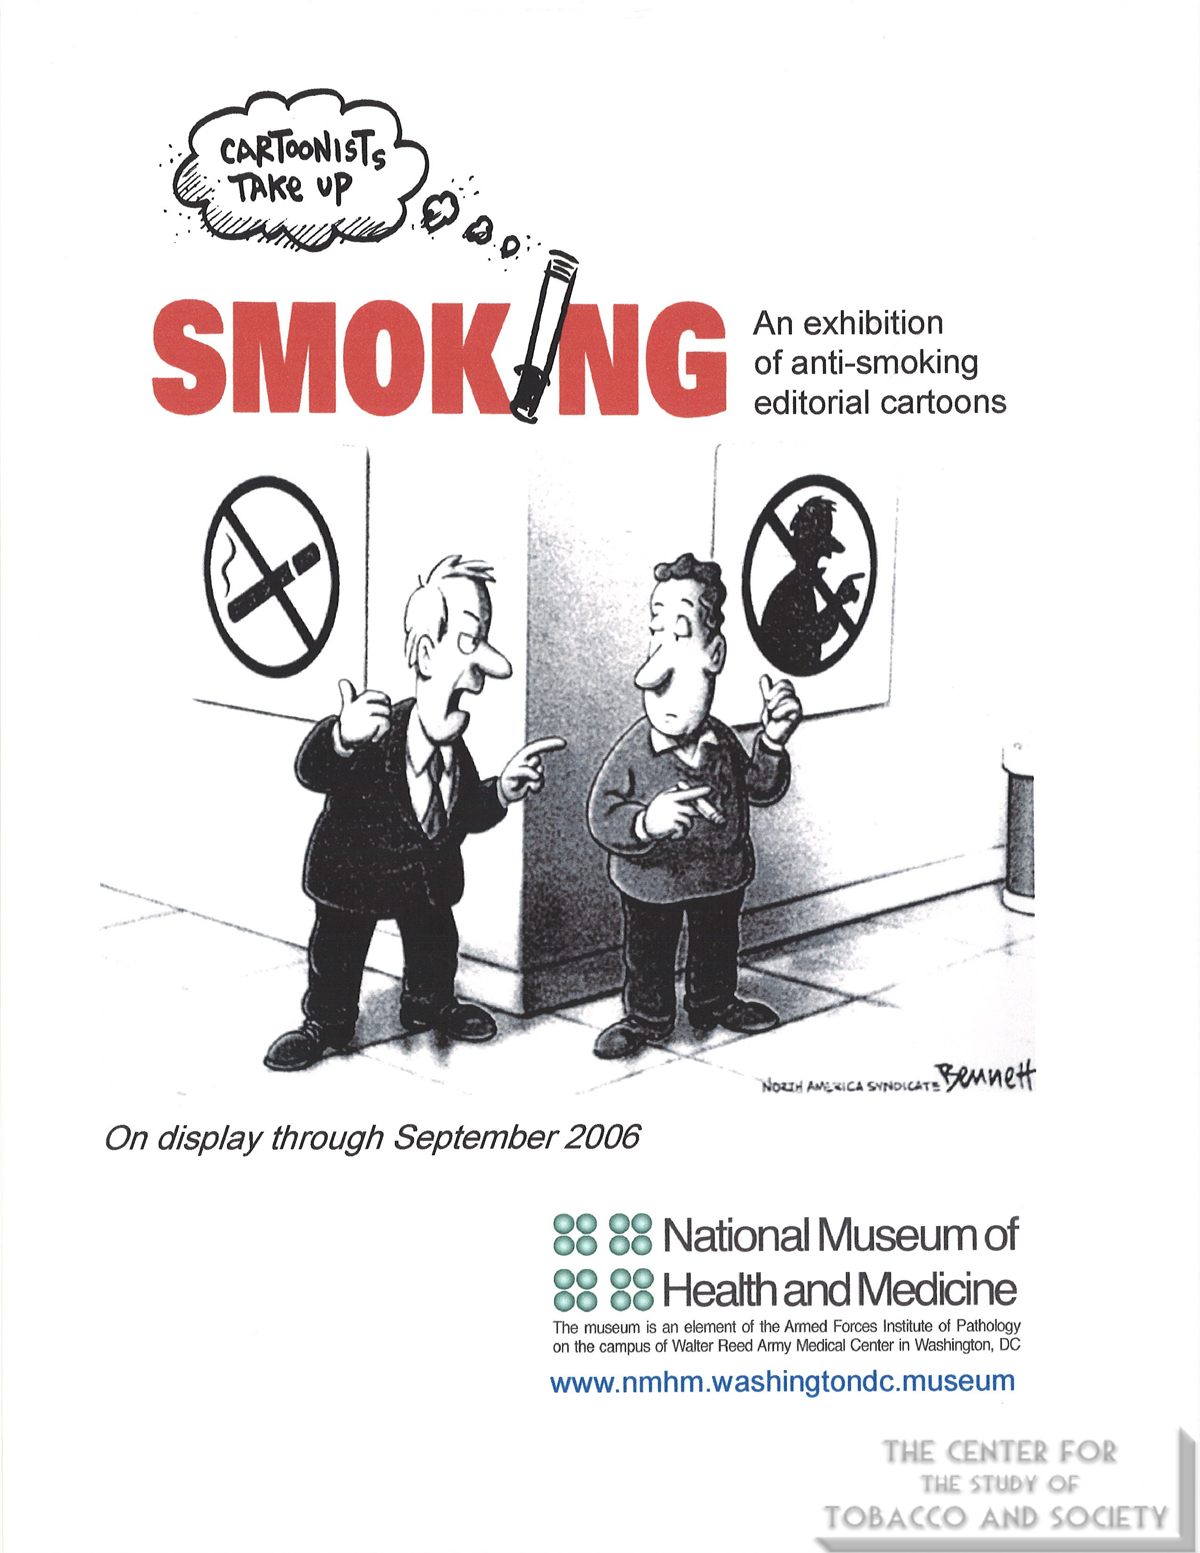 2006 09 Cartoonists Take Up Smoking National Musuem of Health and Medicine Flyer